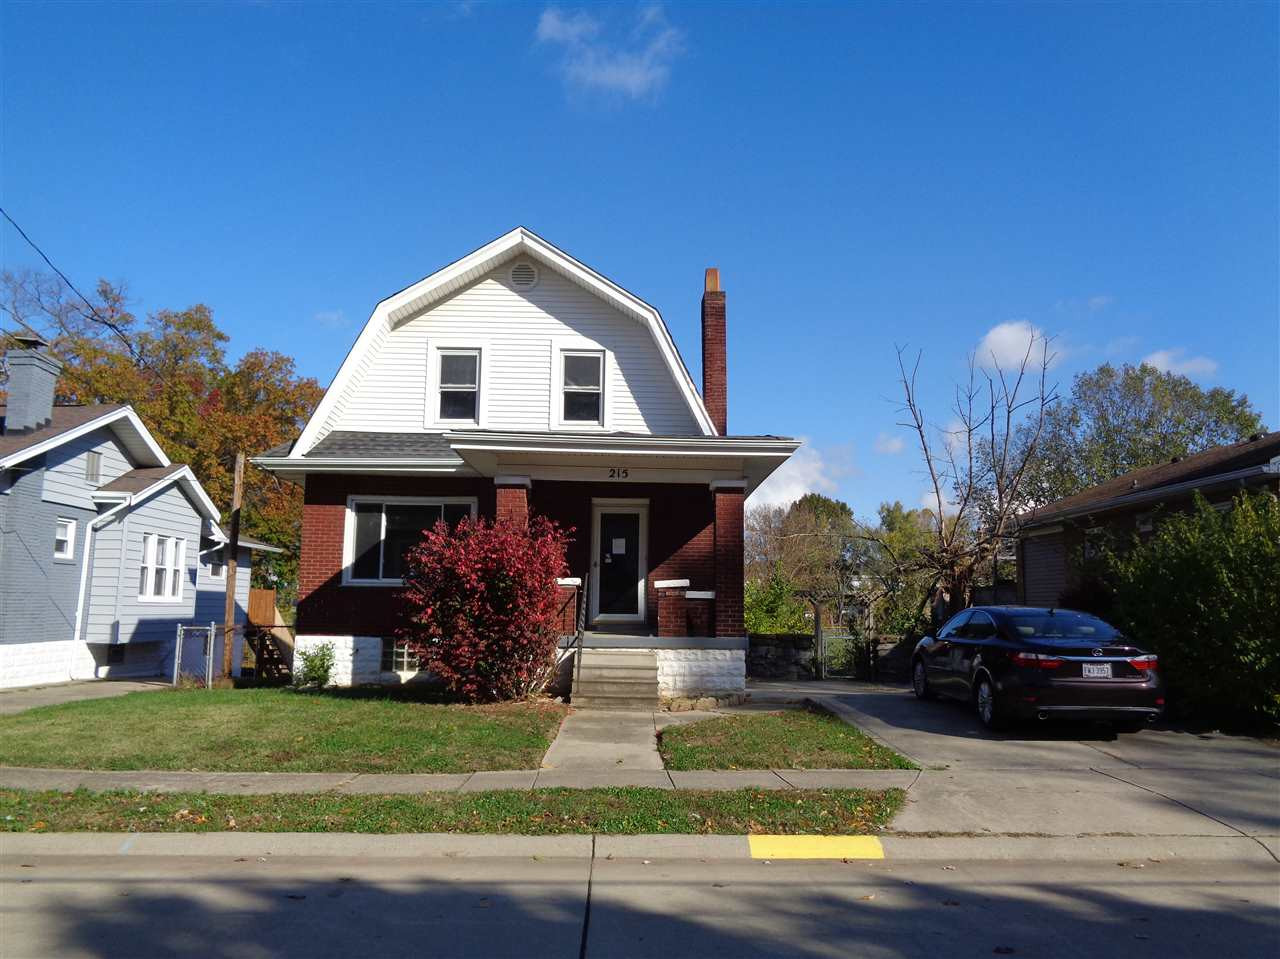 Photo 2 for 215 W 2nd St Silver Grove, KY 41085